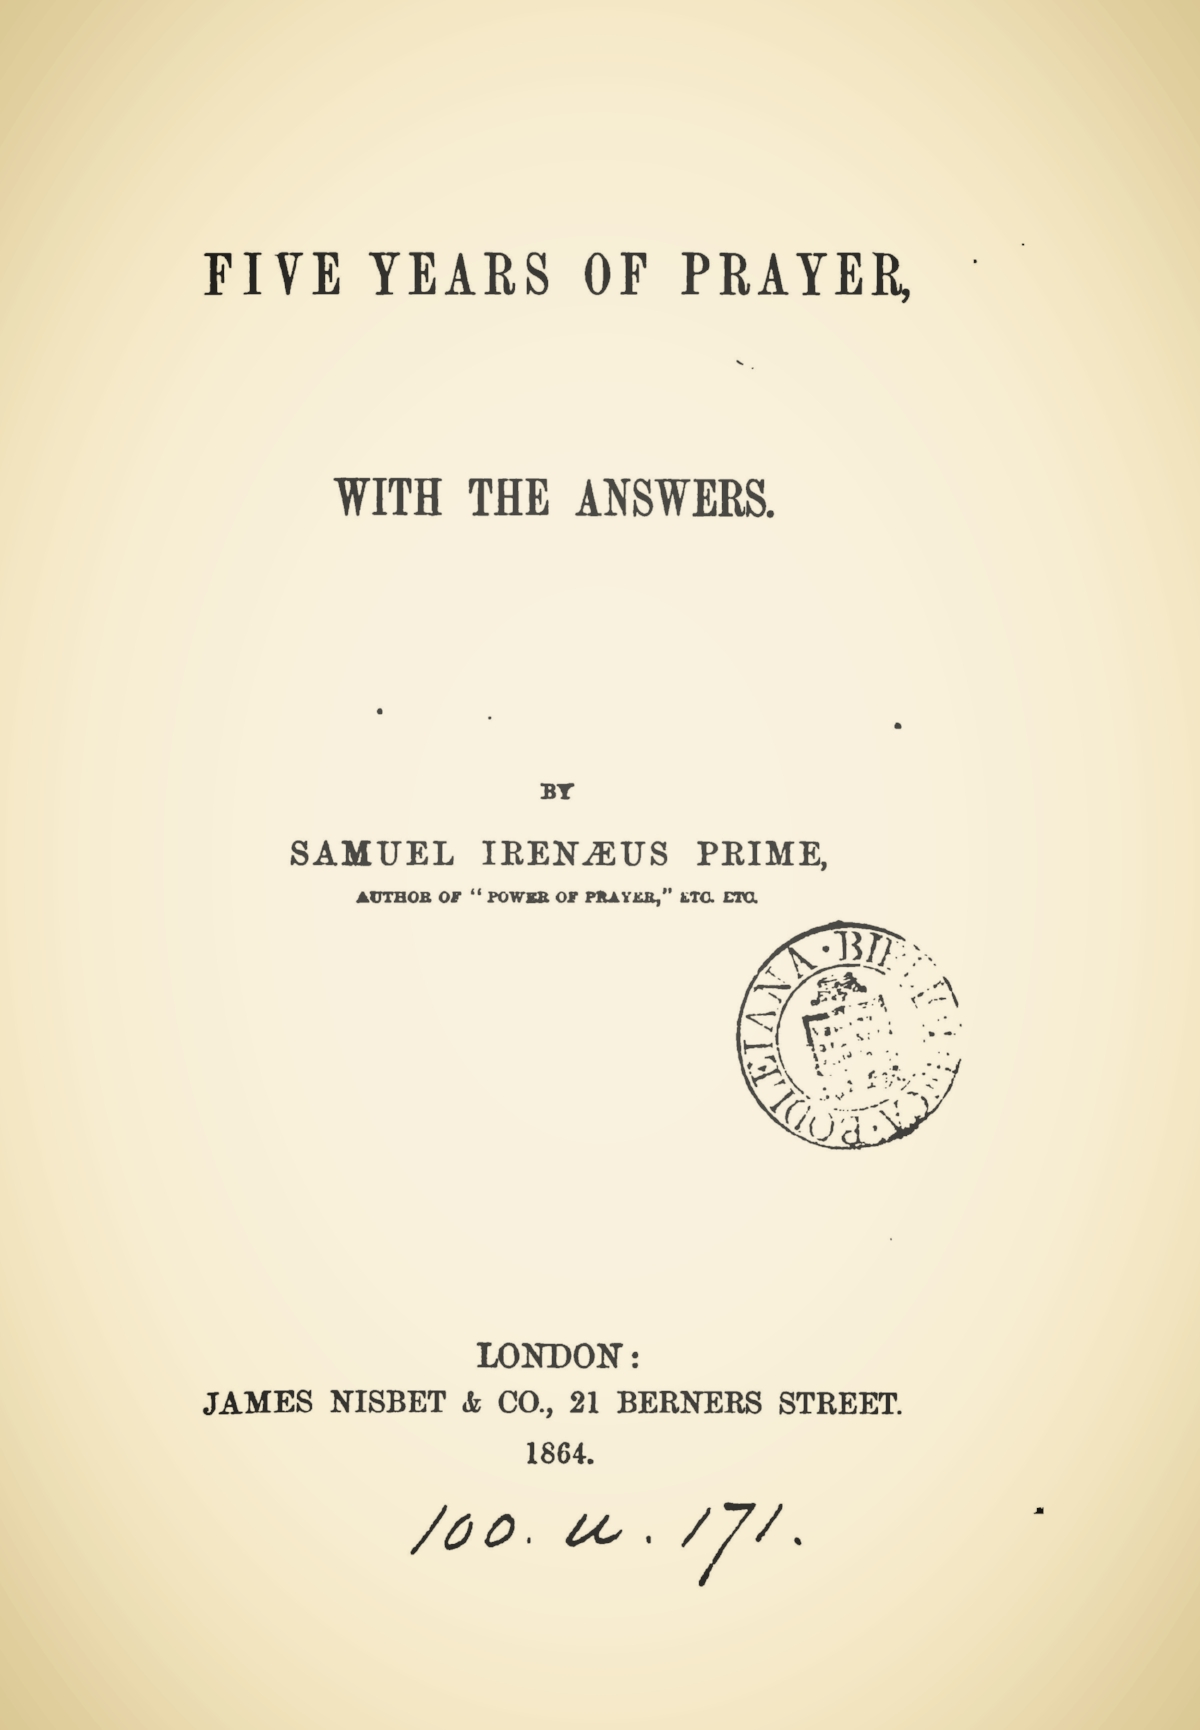 Prime, Samuel Irenaeus, Five Years of Prayer Title Page.jpg